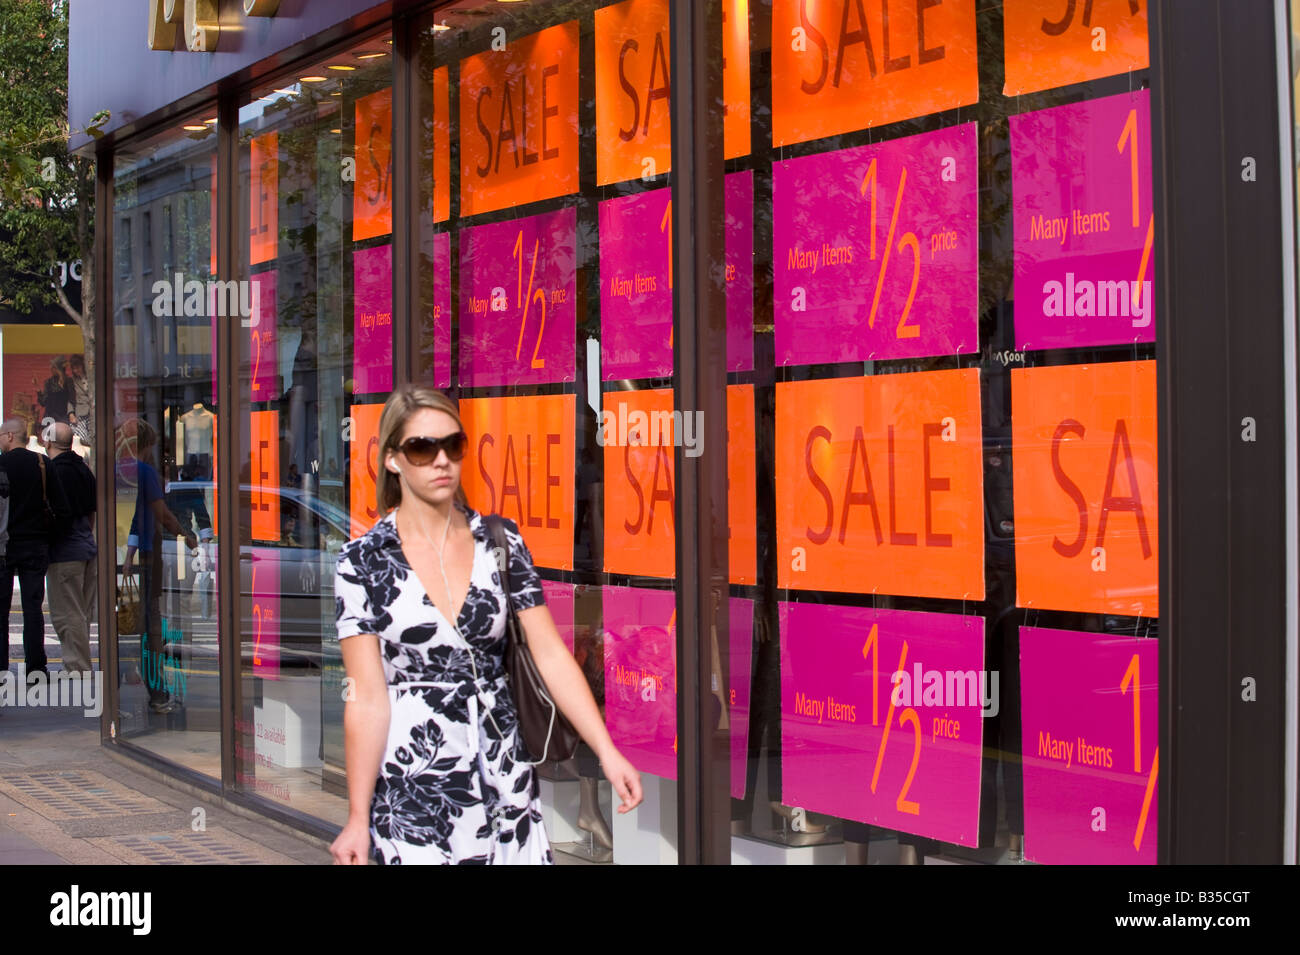 People shopping on King's Road during summer sales Chelsea SW3 London United Kingdom - Stock Image